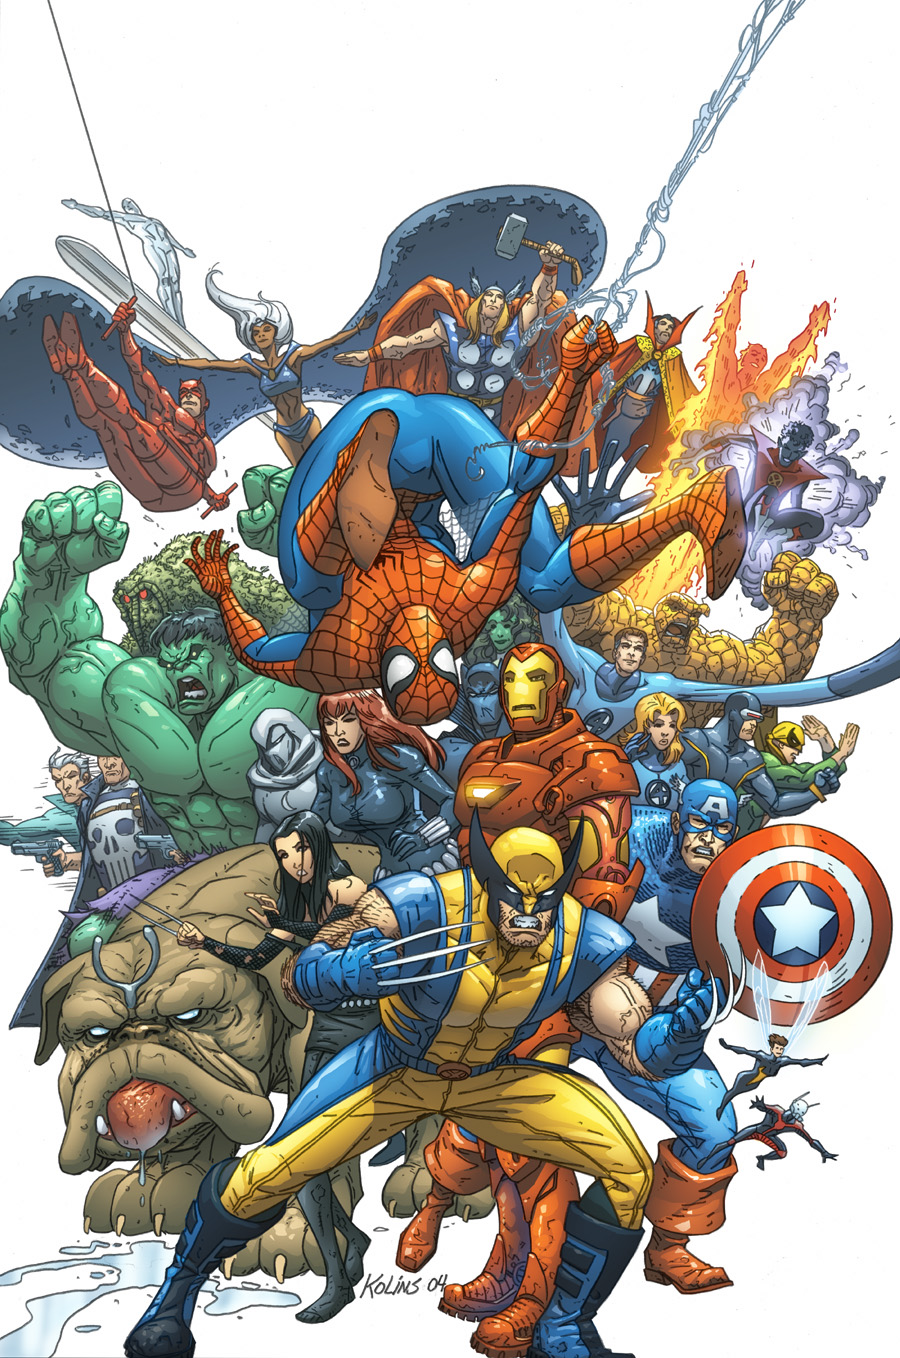 Some random marvel artworks i really love the colors and the way they